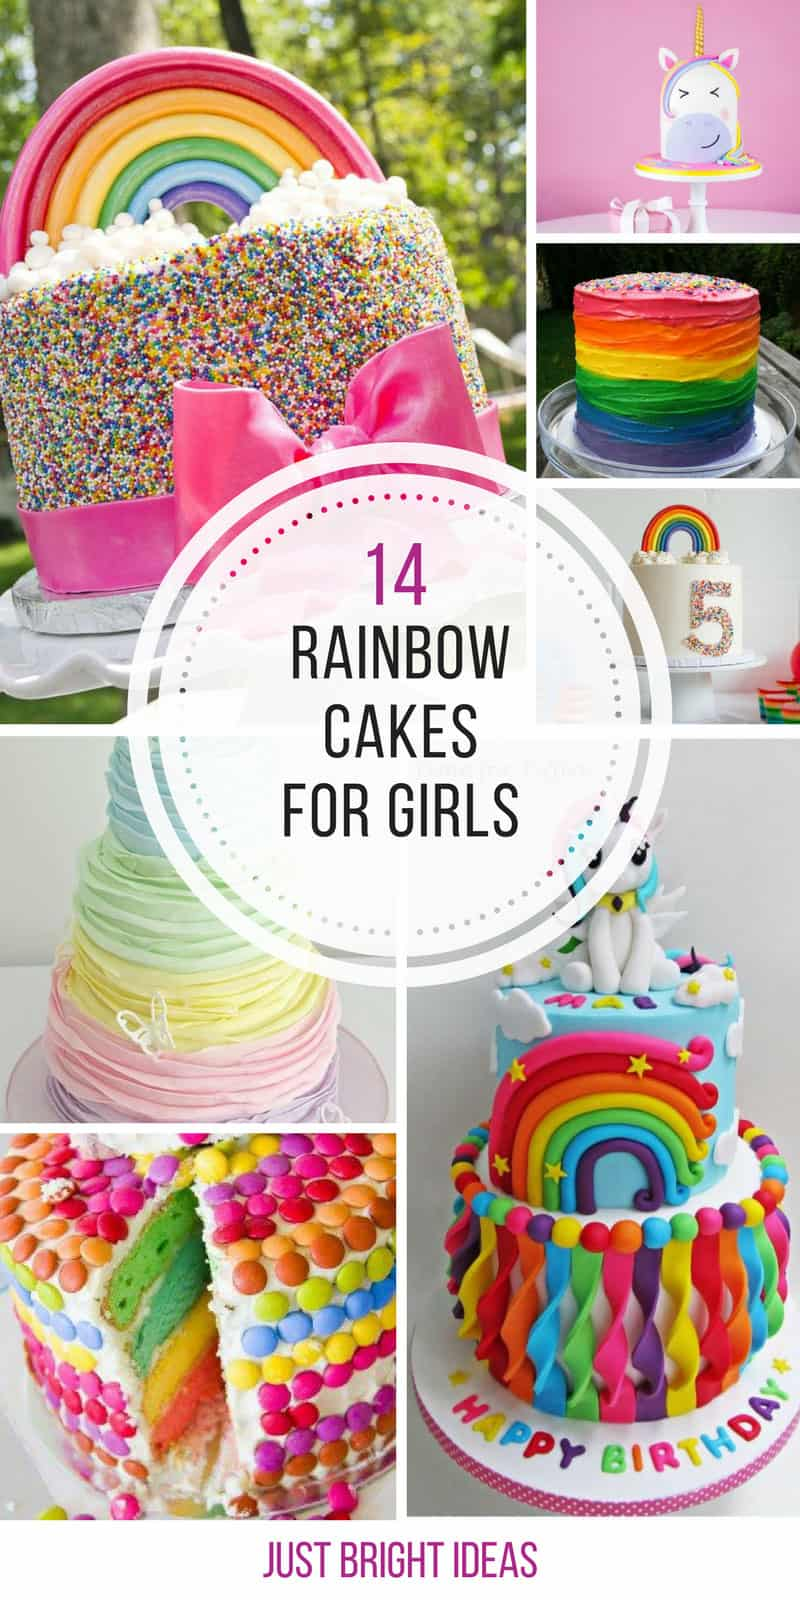 14 Totally Magical Rainbow Birthday Cakes for Girls